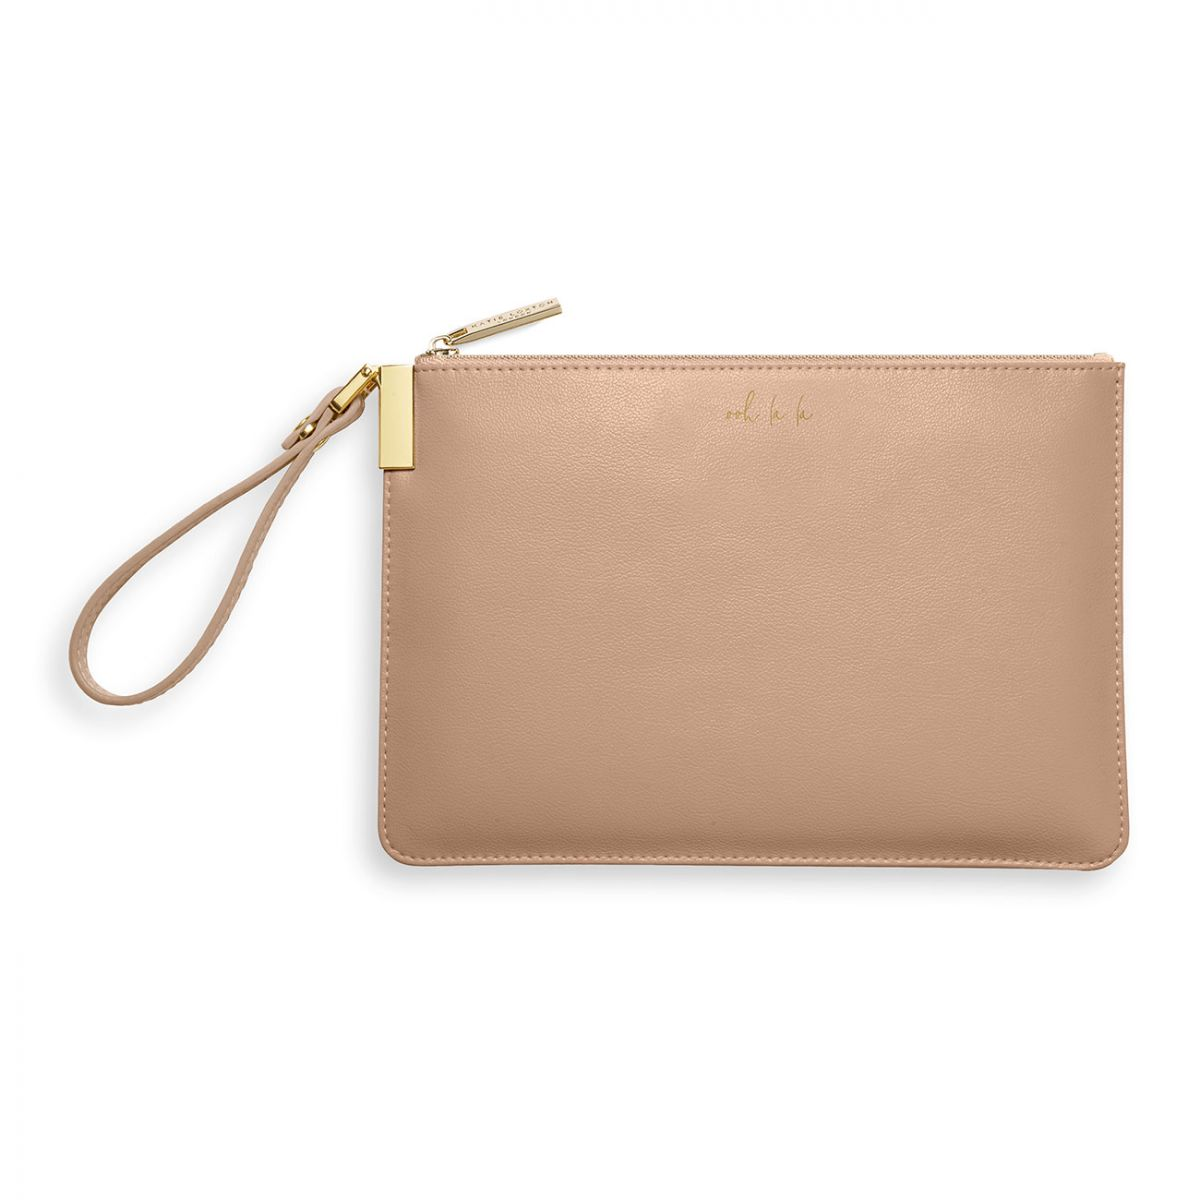 Katie loxton secret message pouch Ooh la la Taupe